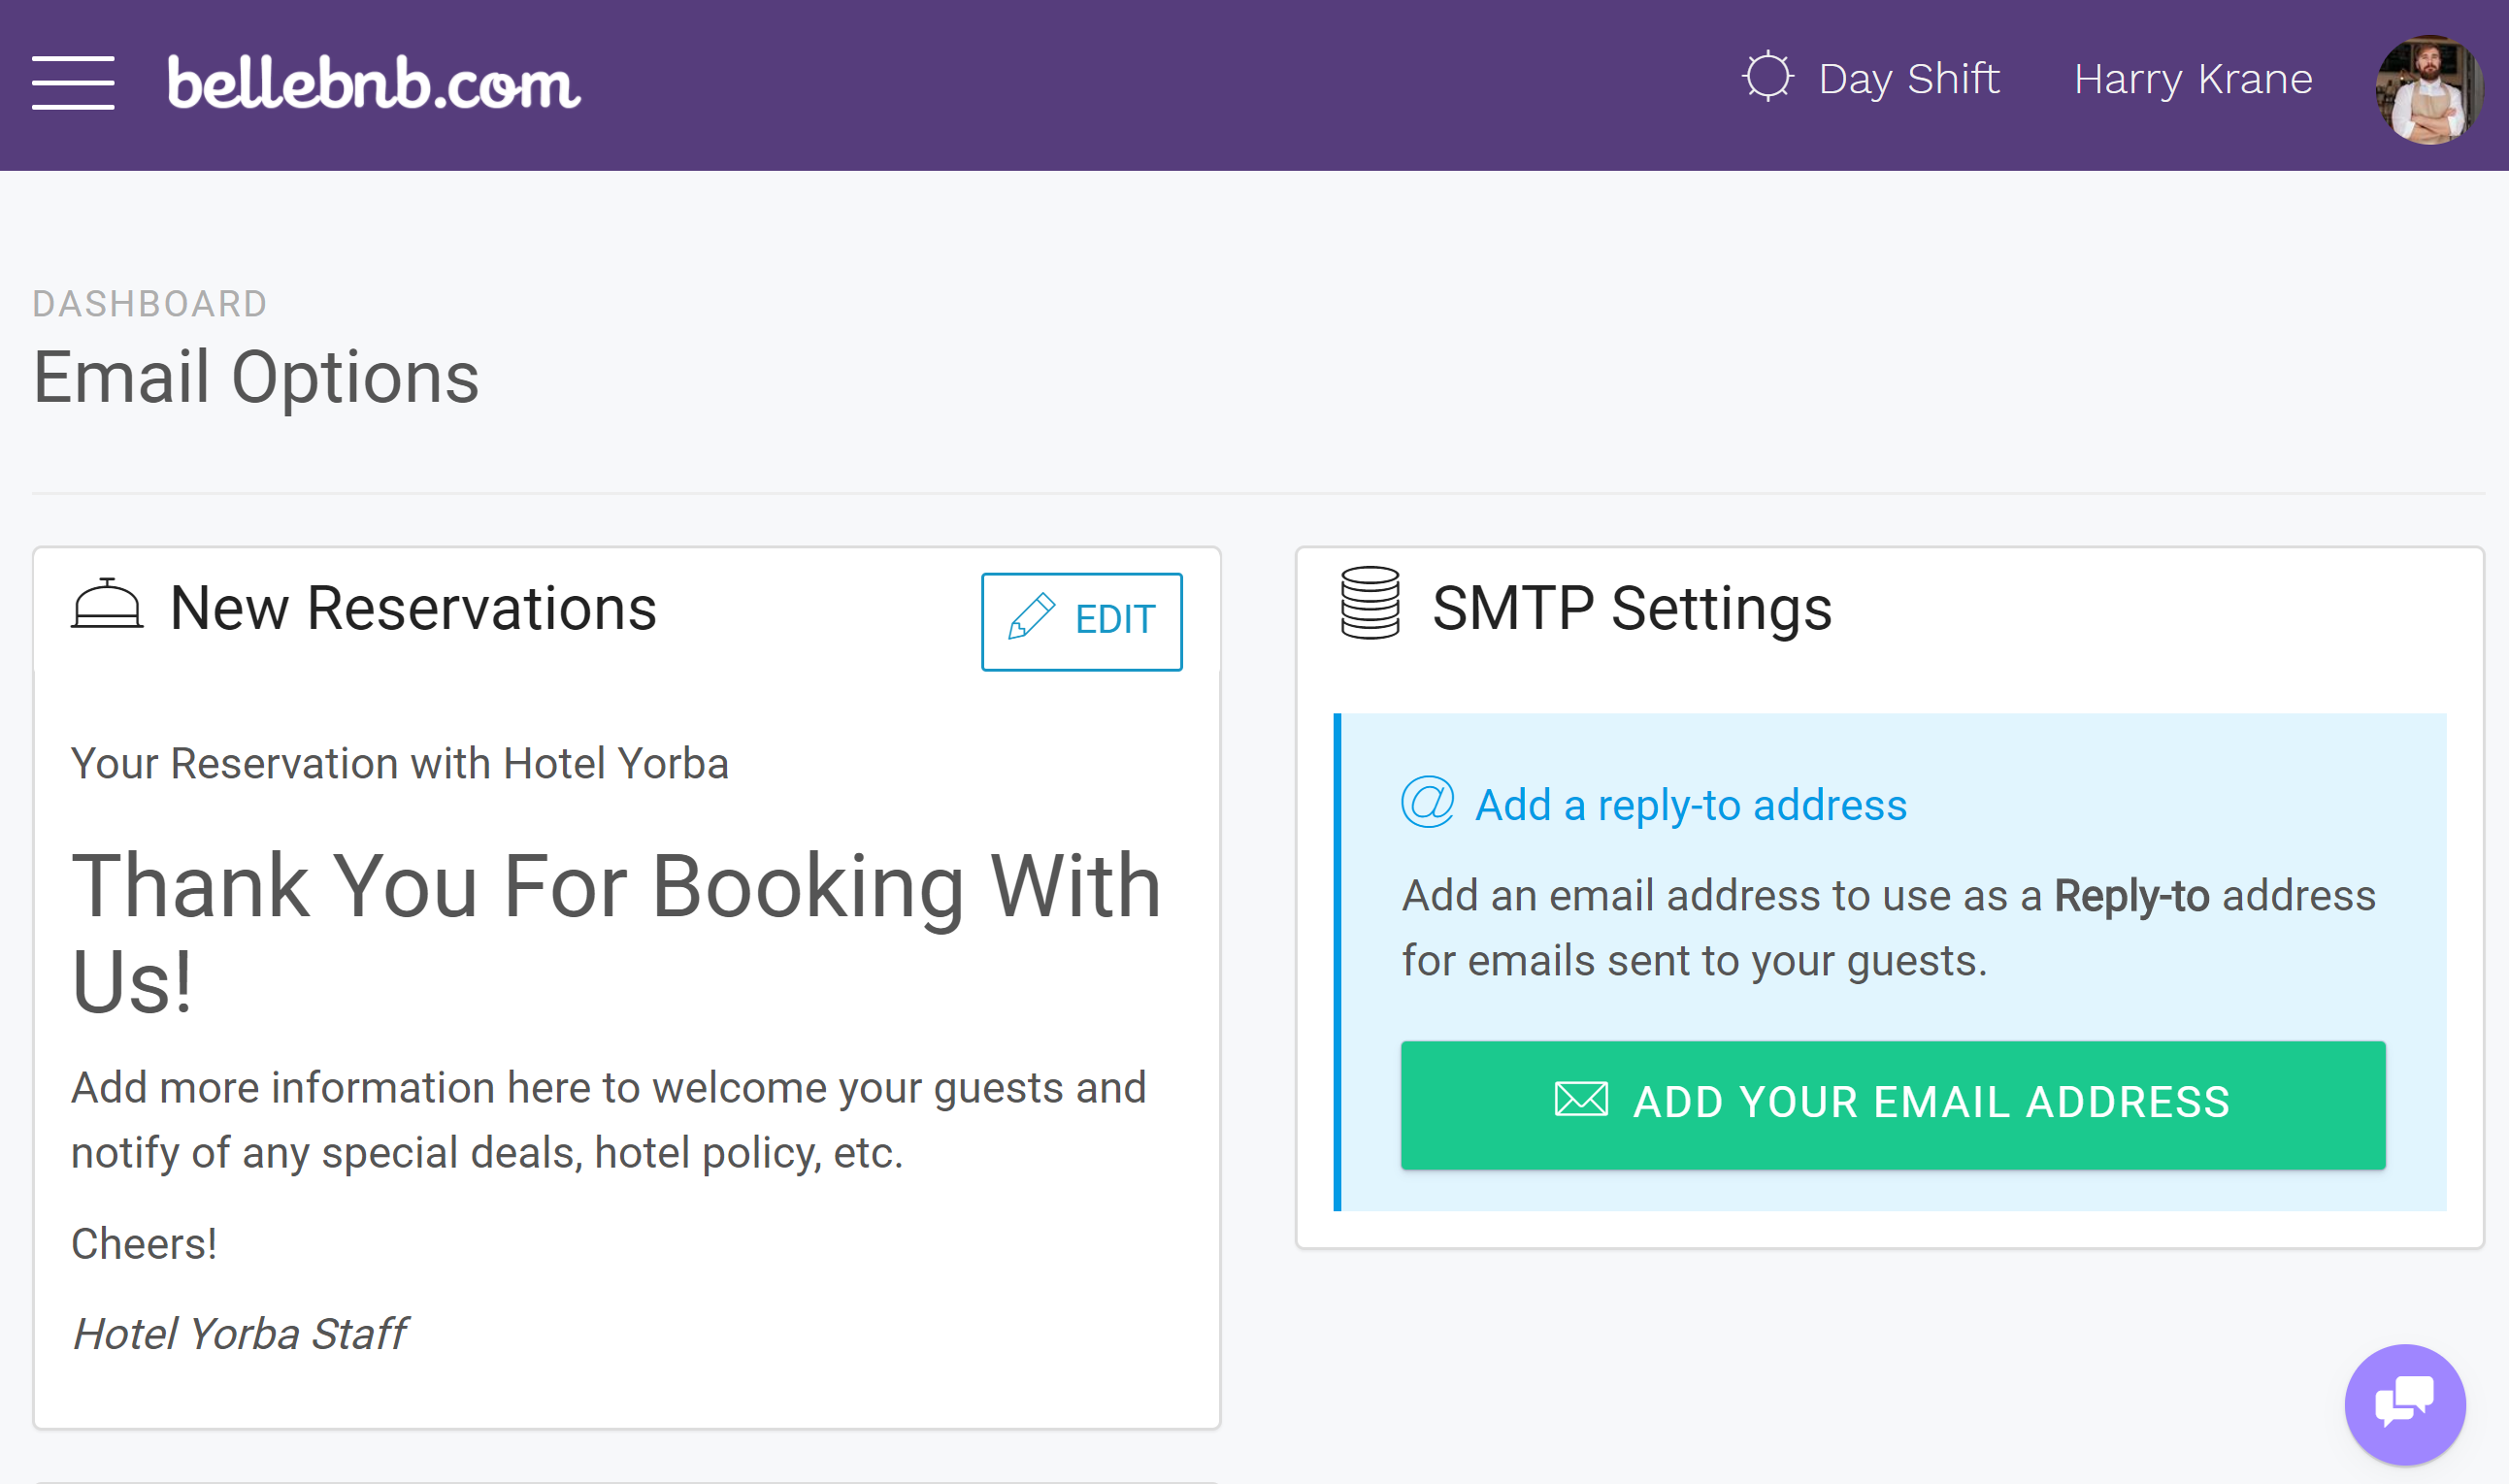 Hotel Management HTML Emails You can now create custom emails for your daily hotel activities. You can create a custom message for new reservations, check-outs, and cancellations. Edit your messages in HTML to send out automatically as part of your bookings flow.